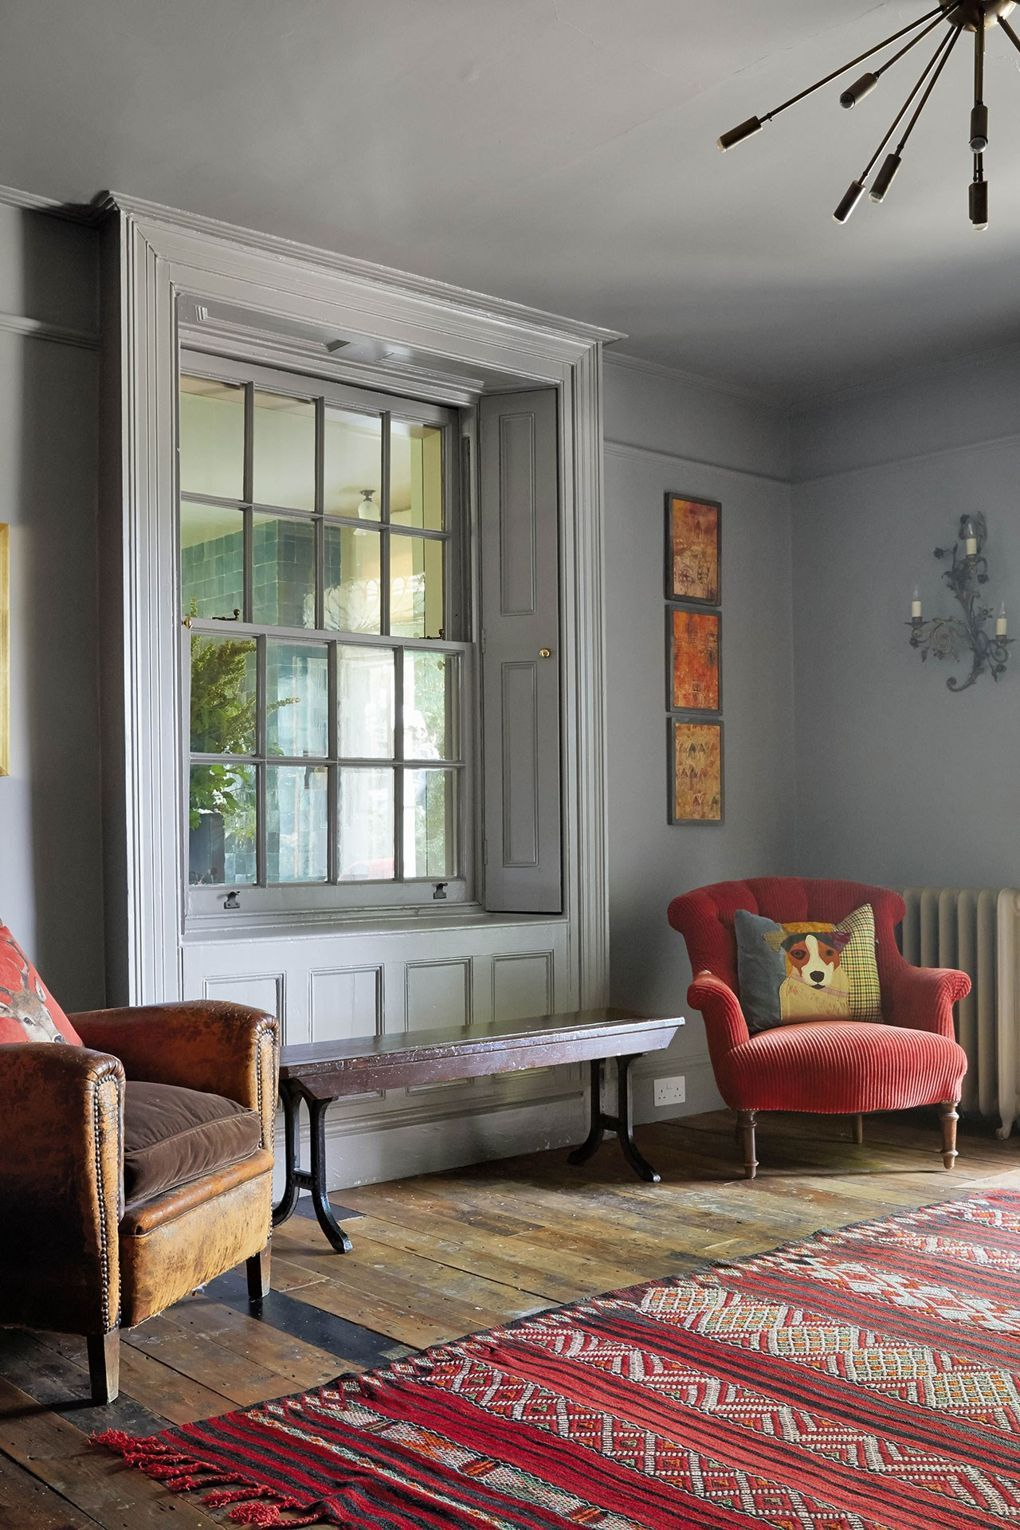 A farmhouse restored with soul by Maria Speake of